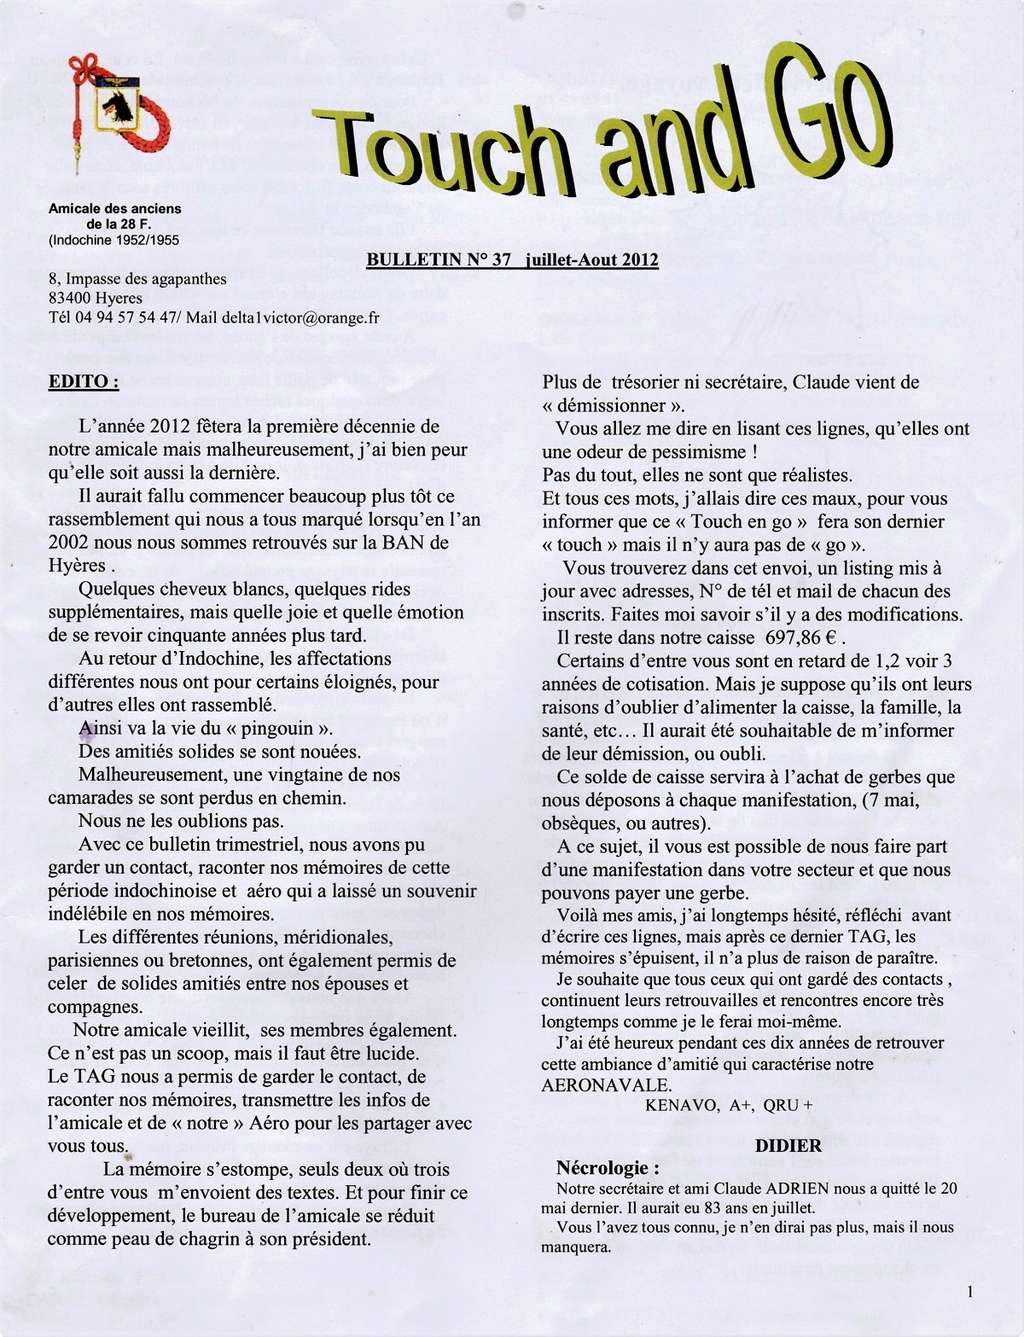 [Opérations de guerre] INDOCHINE - TOME 9 - Page 3 New16410